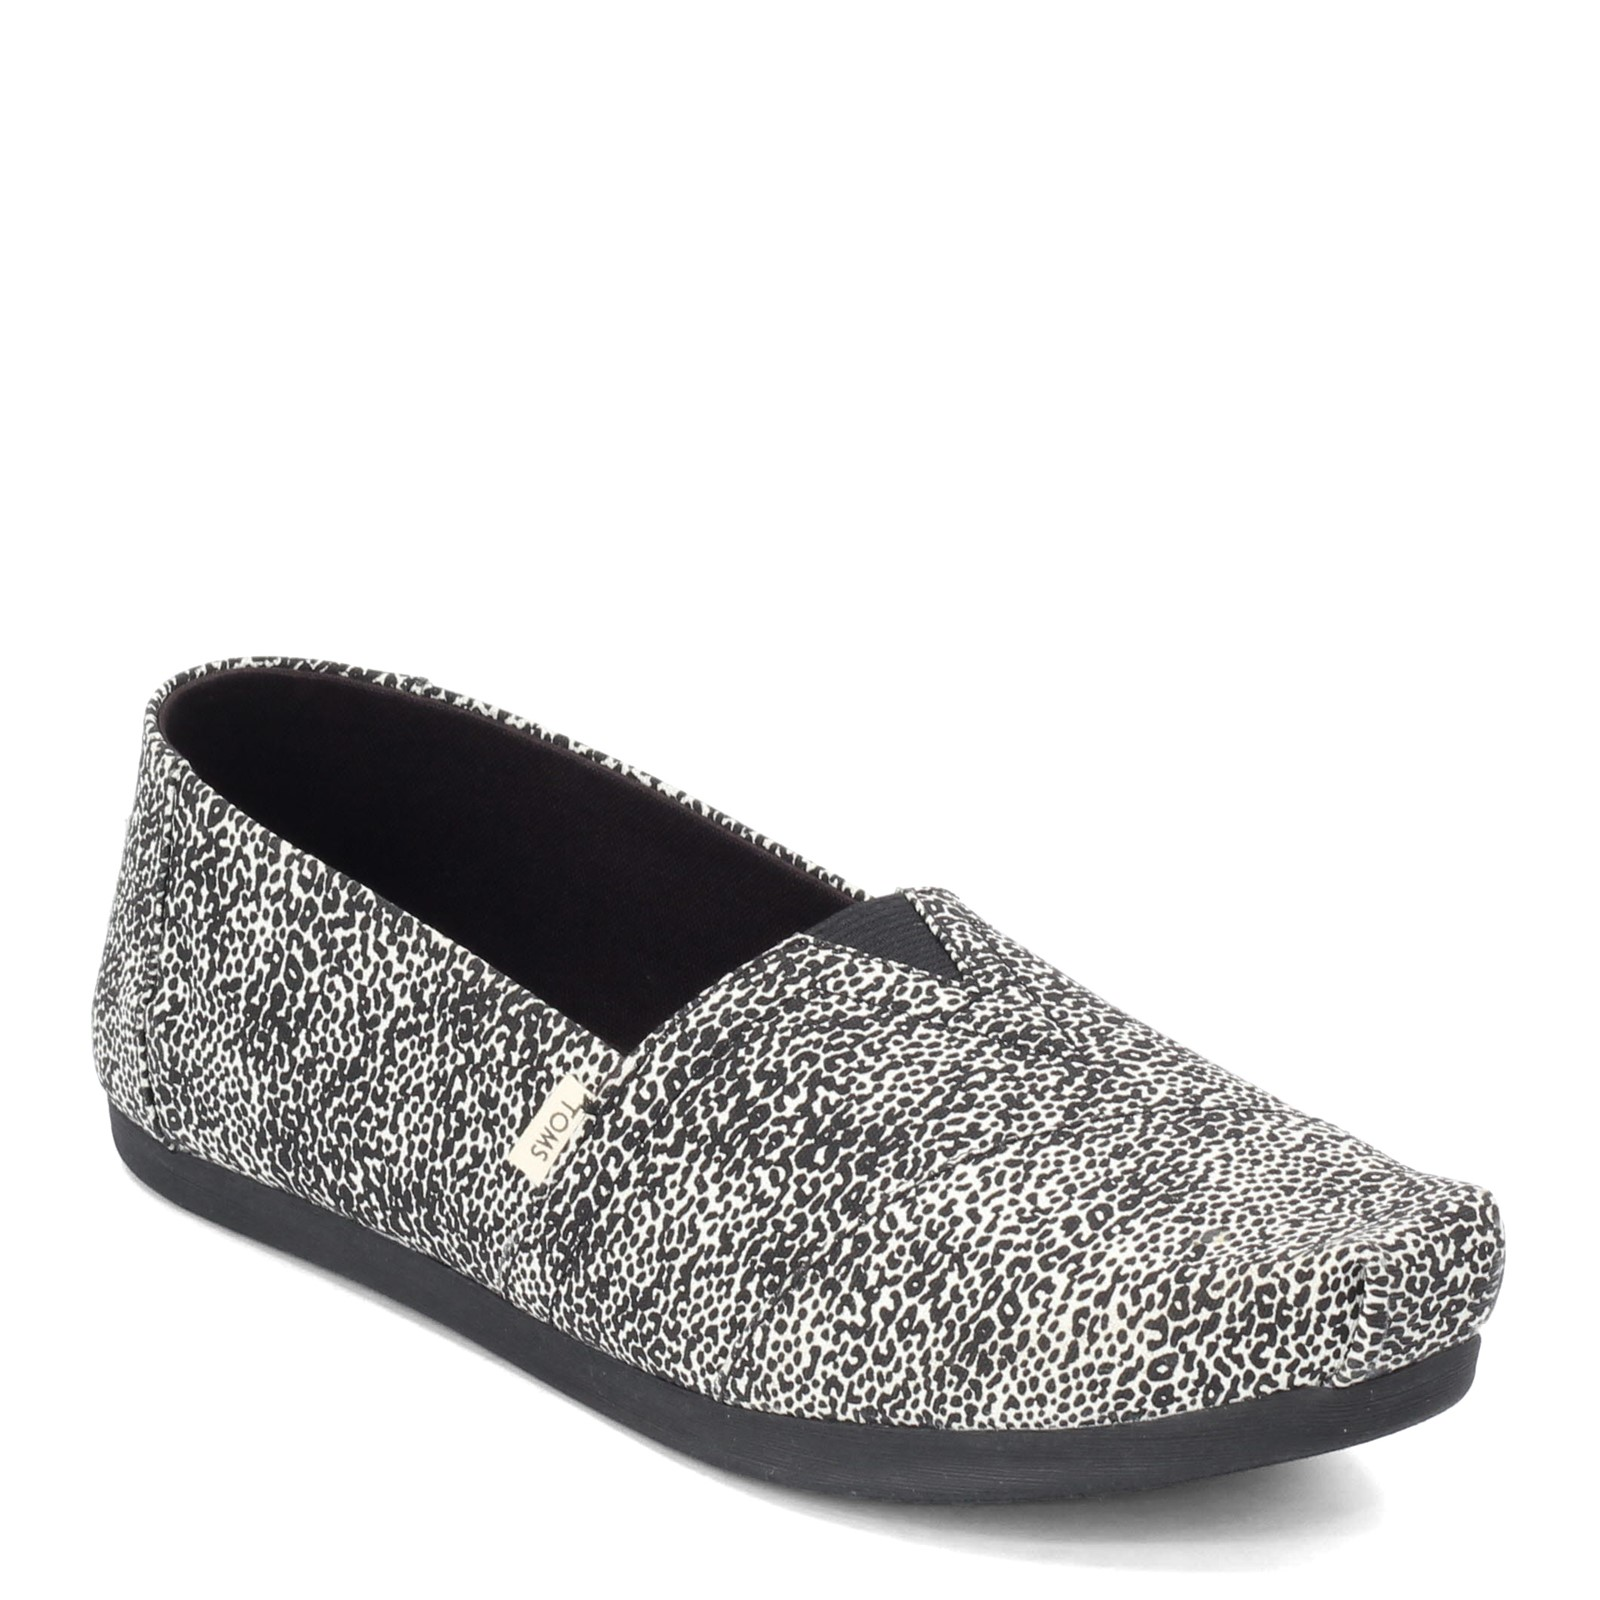 Women's Toms, Alpargata Slip-On